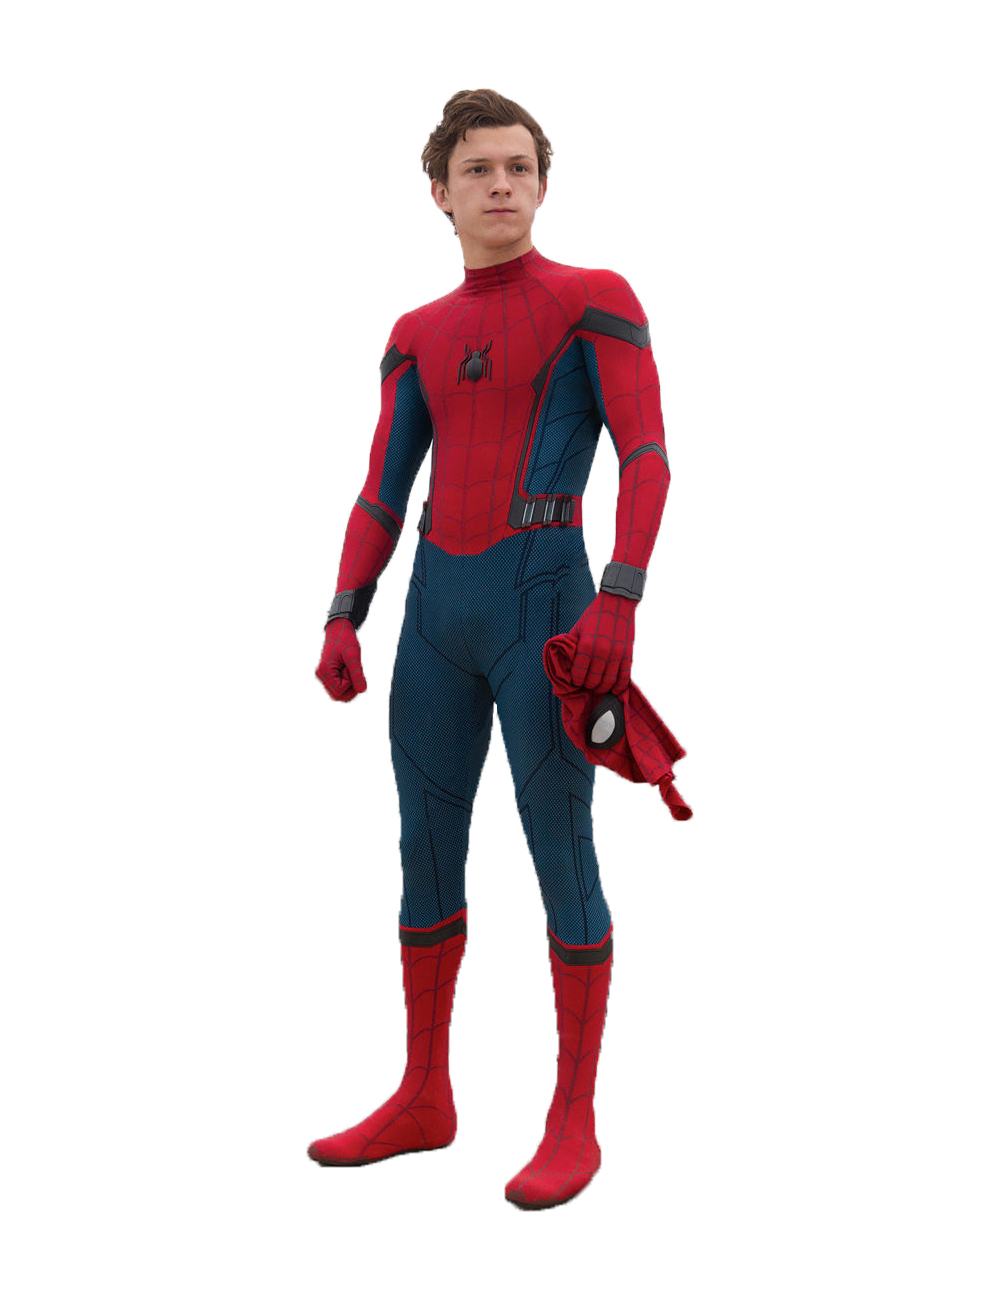 Spiderman Costume 3D Halloween Spandex Spiderman Superhero fullbody Cosplay Costume Tom Holland Spider Man